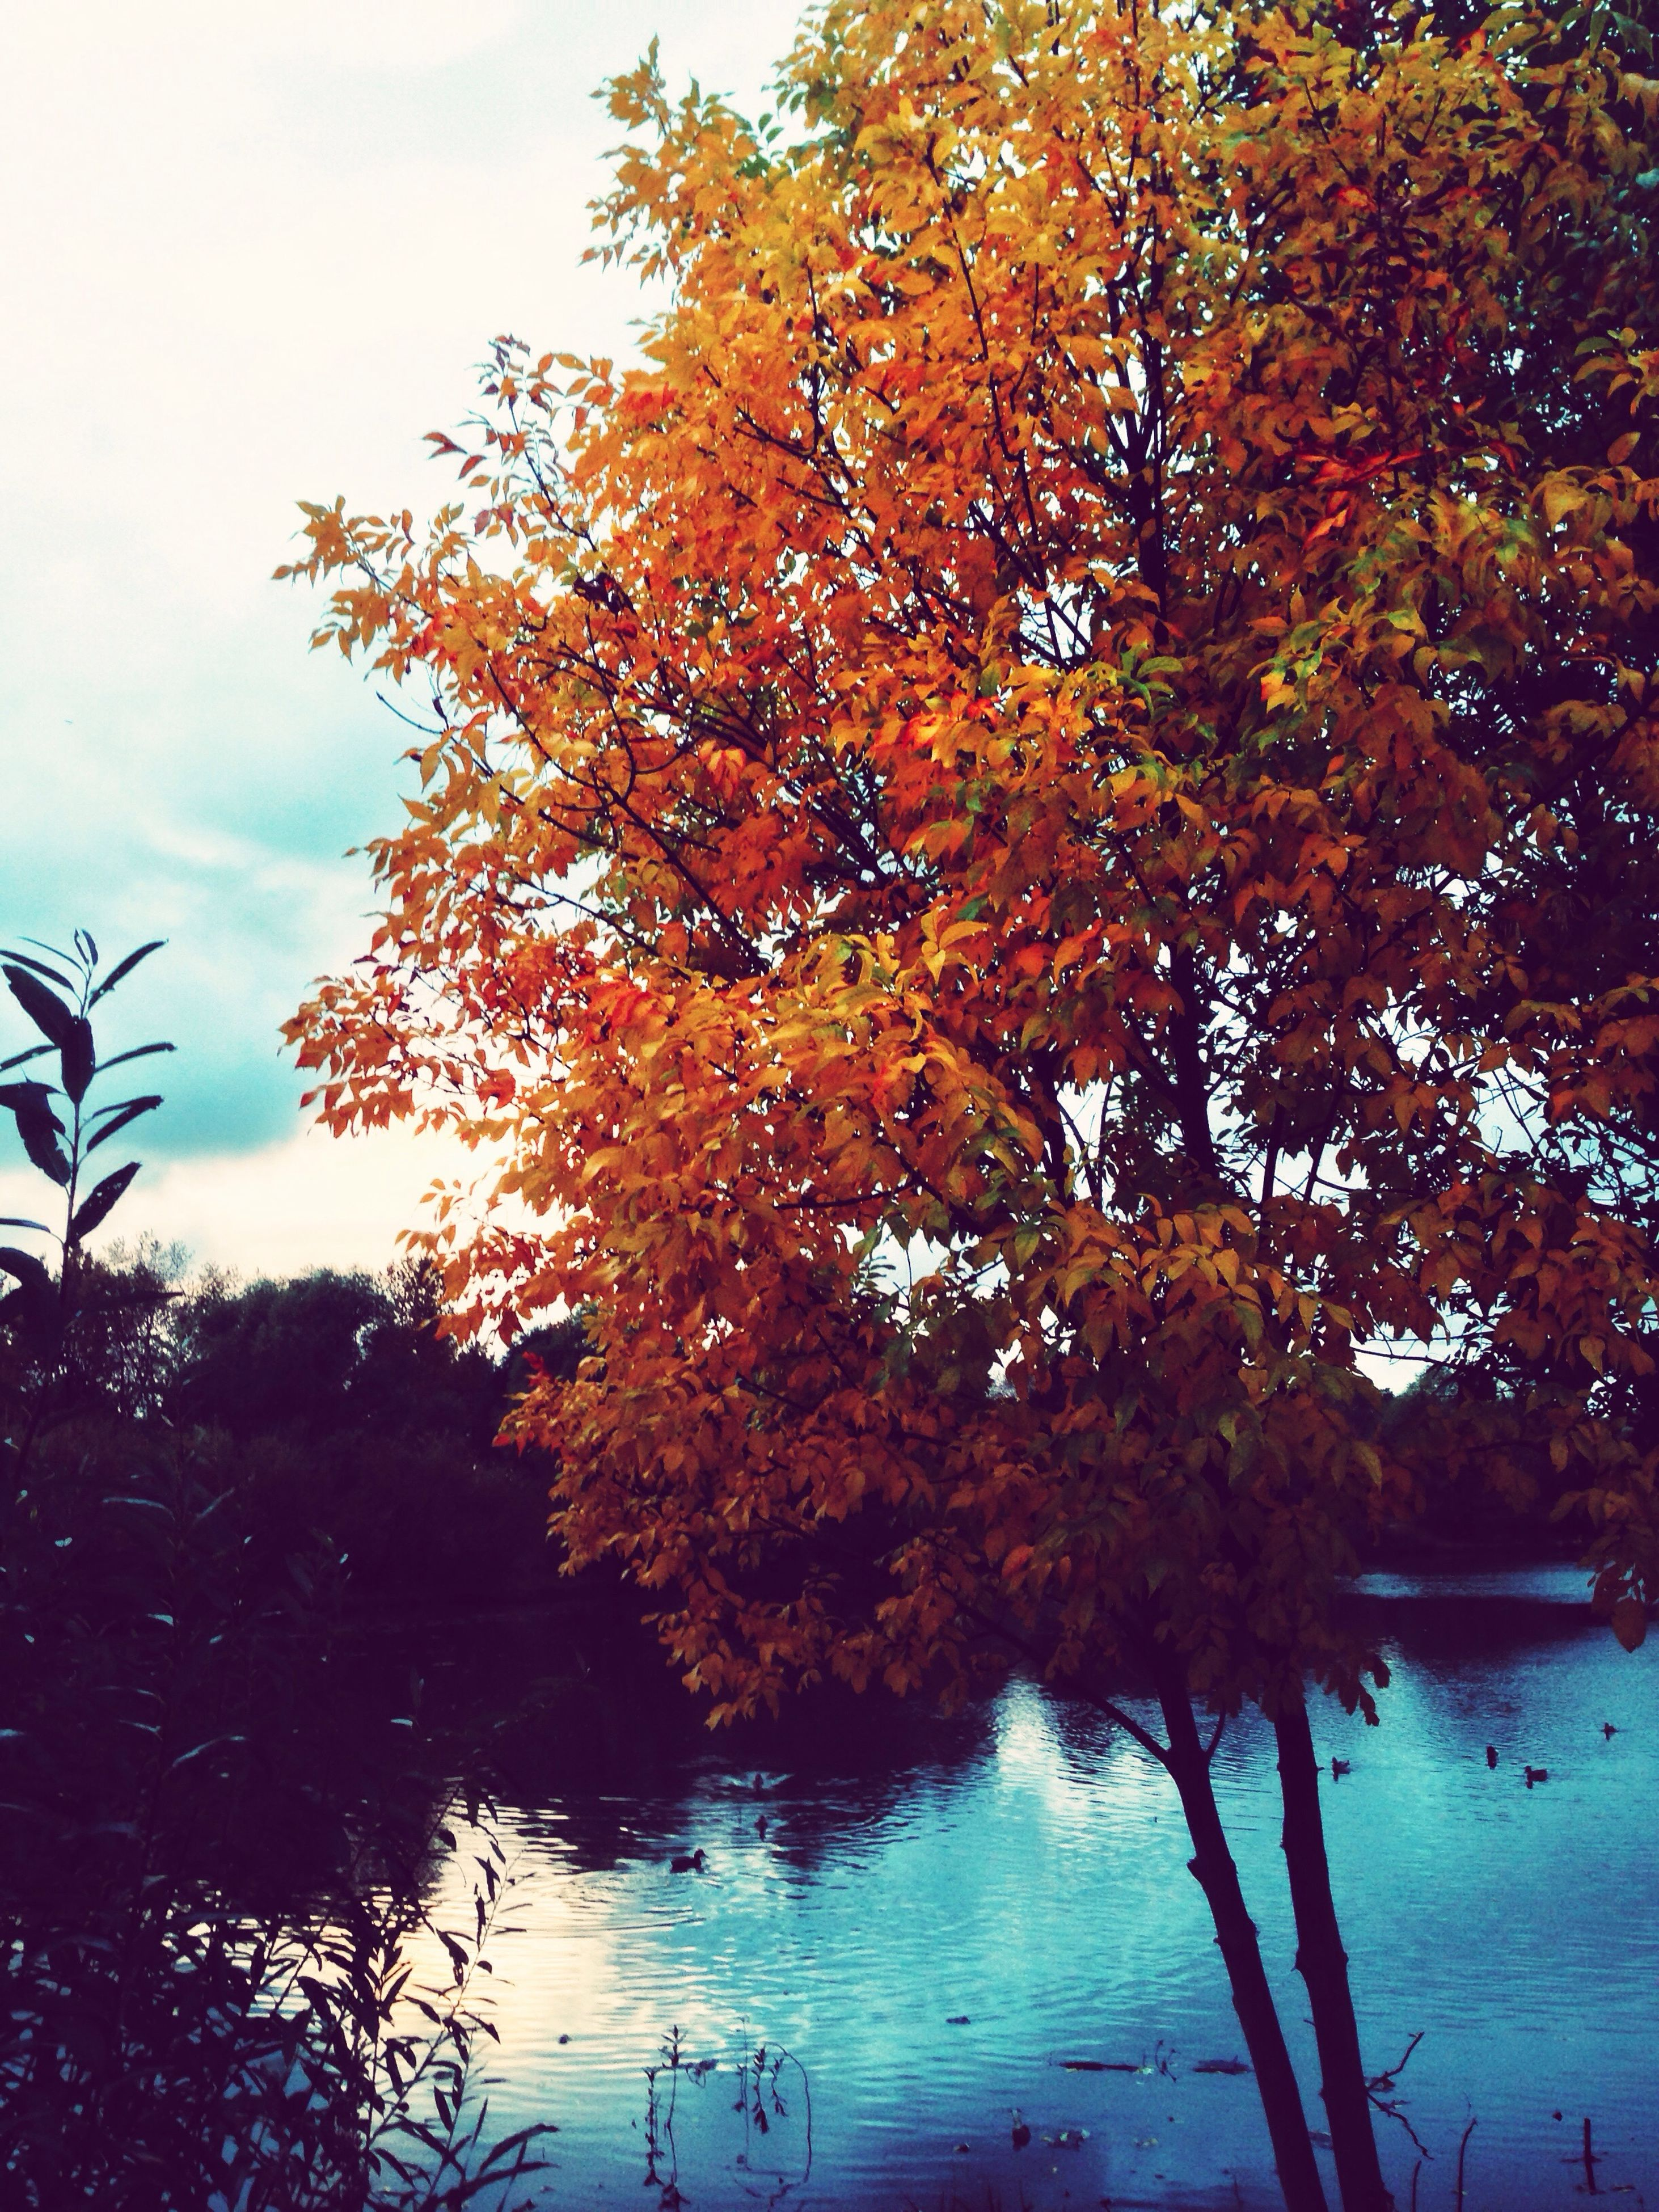 tree, autumn, tranquility, beauty in nature, tranquil scene, change, branch, water, nature, scenics, season, sky, lake, orange color, reflection, growth, idyllic, leaf, outdoors, no people